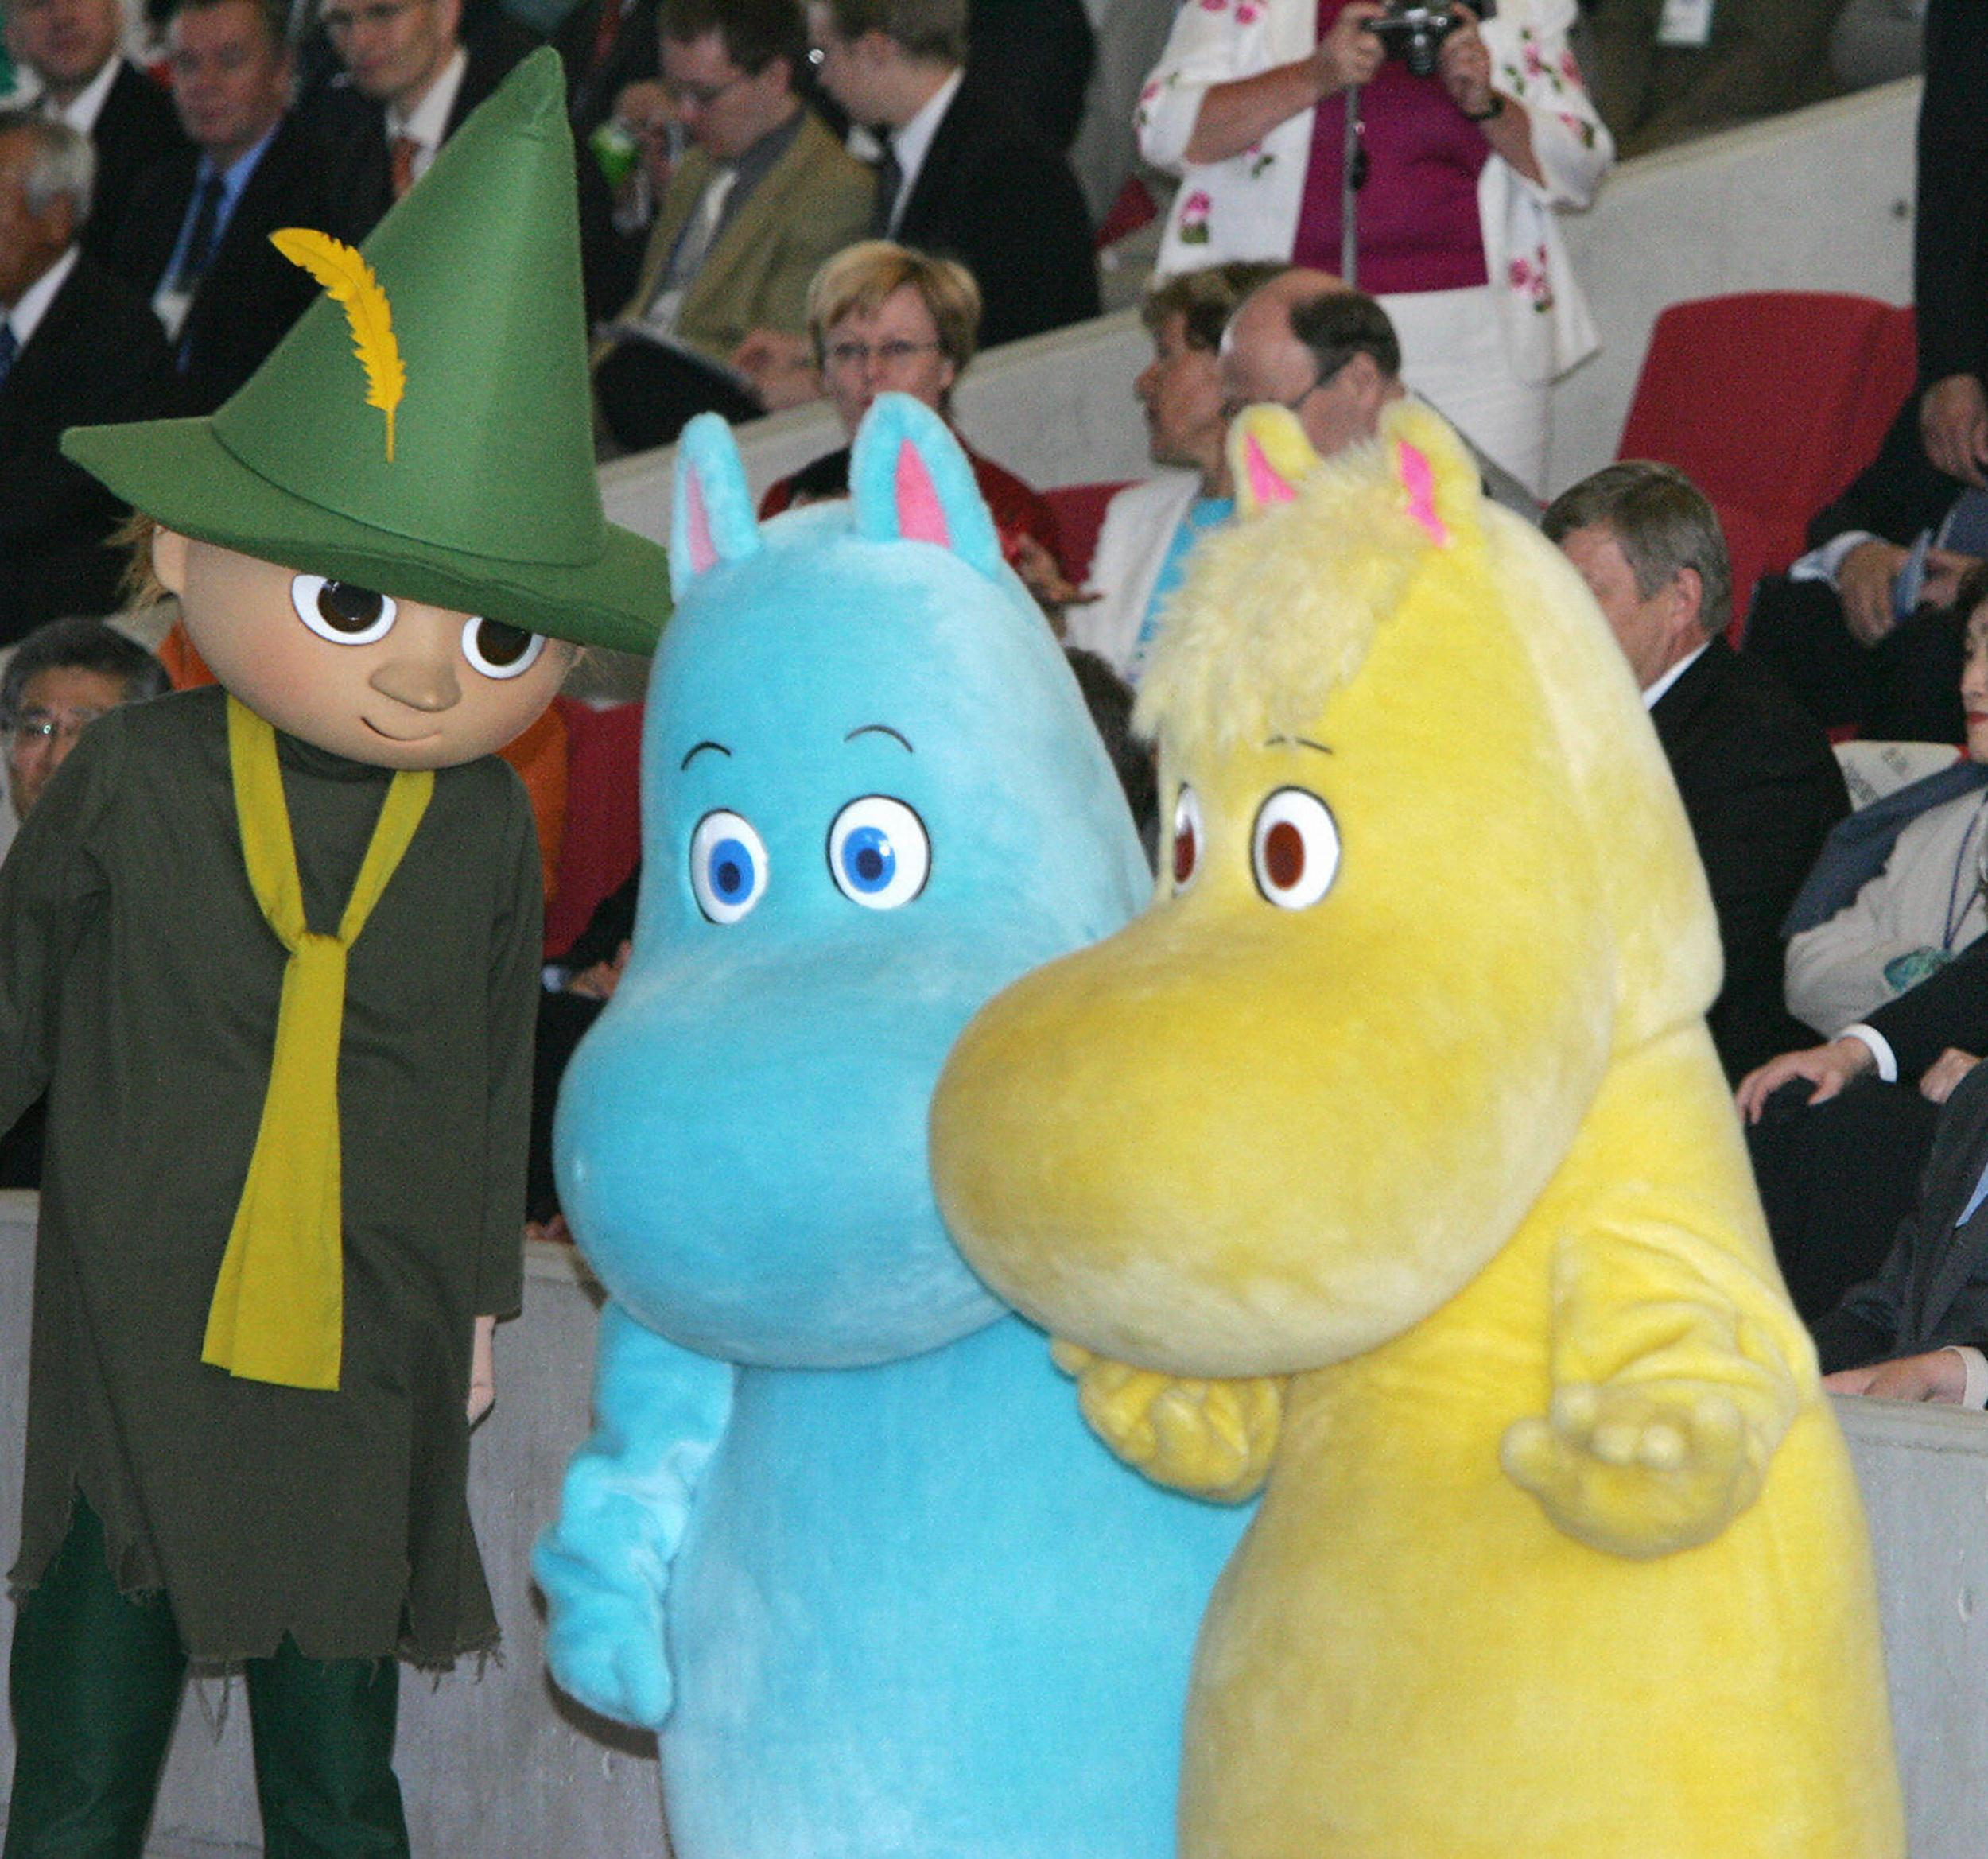 Image: Stuffed toys Moomin, the famous Finnish cartoon characters.